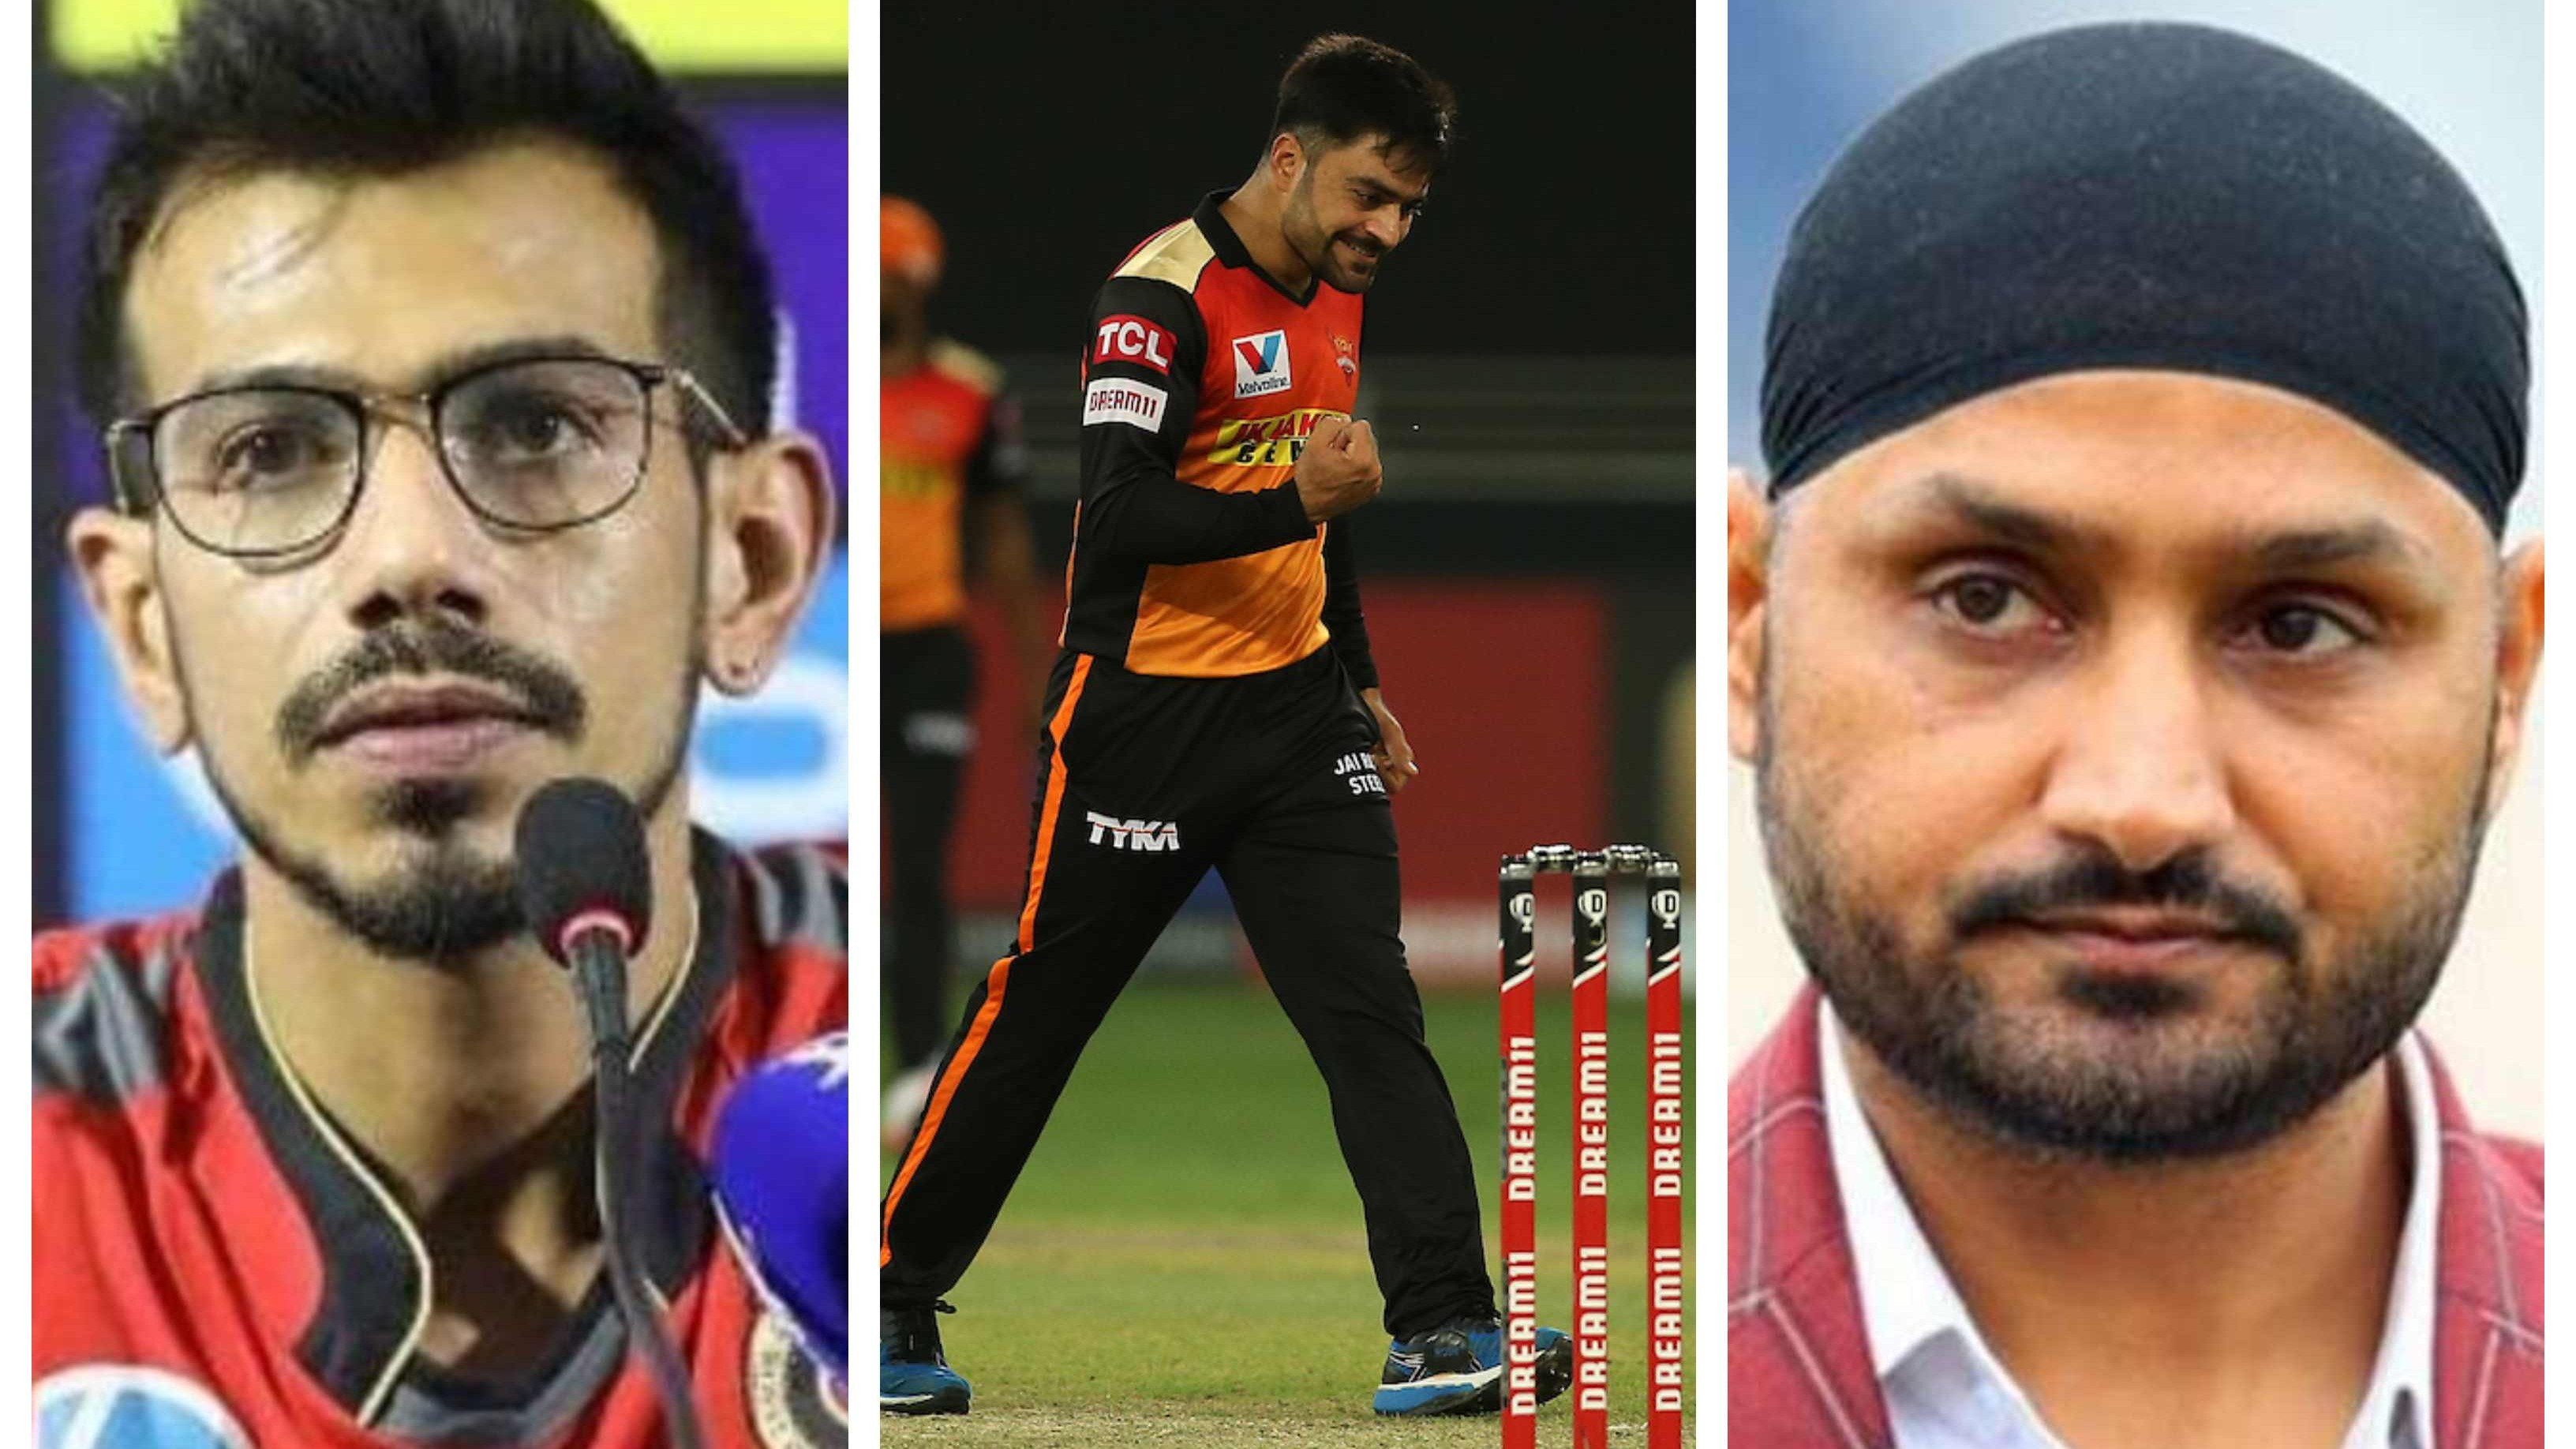 IPL 2020: Cricket fraternity hails Rashid Khan for his astonishing bowling figures in SRH's big win over DC